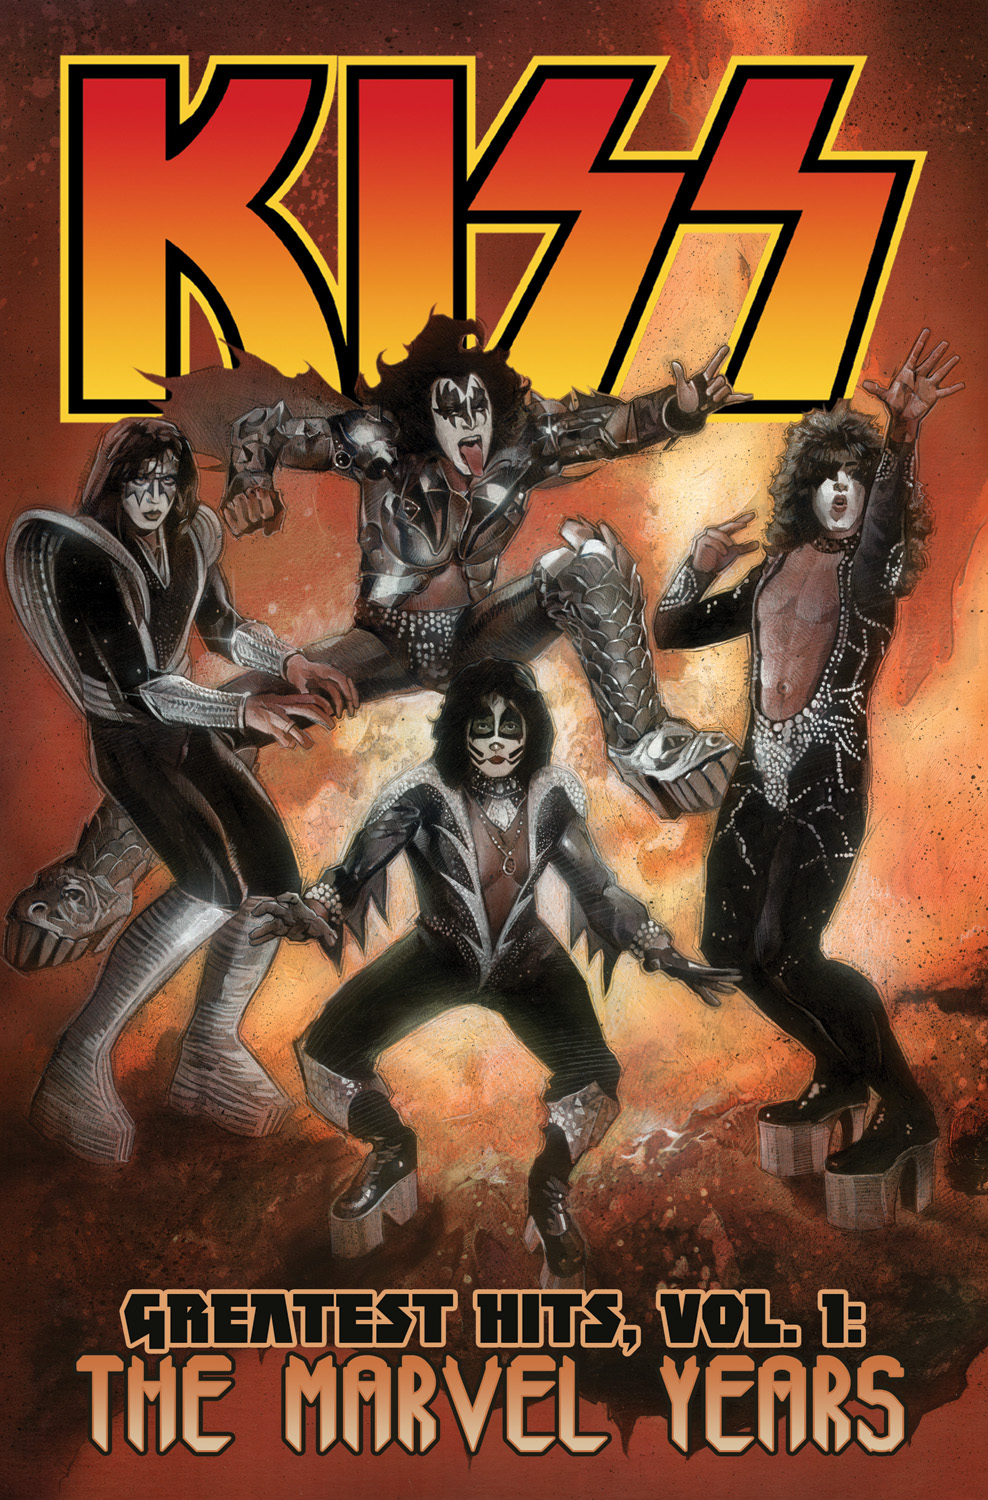 Kiss Greatest Hits